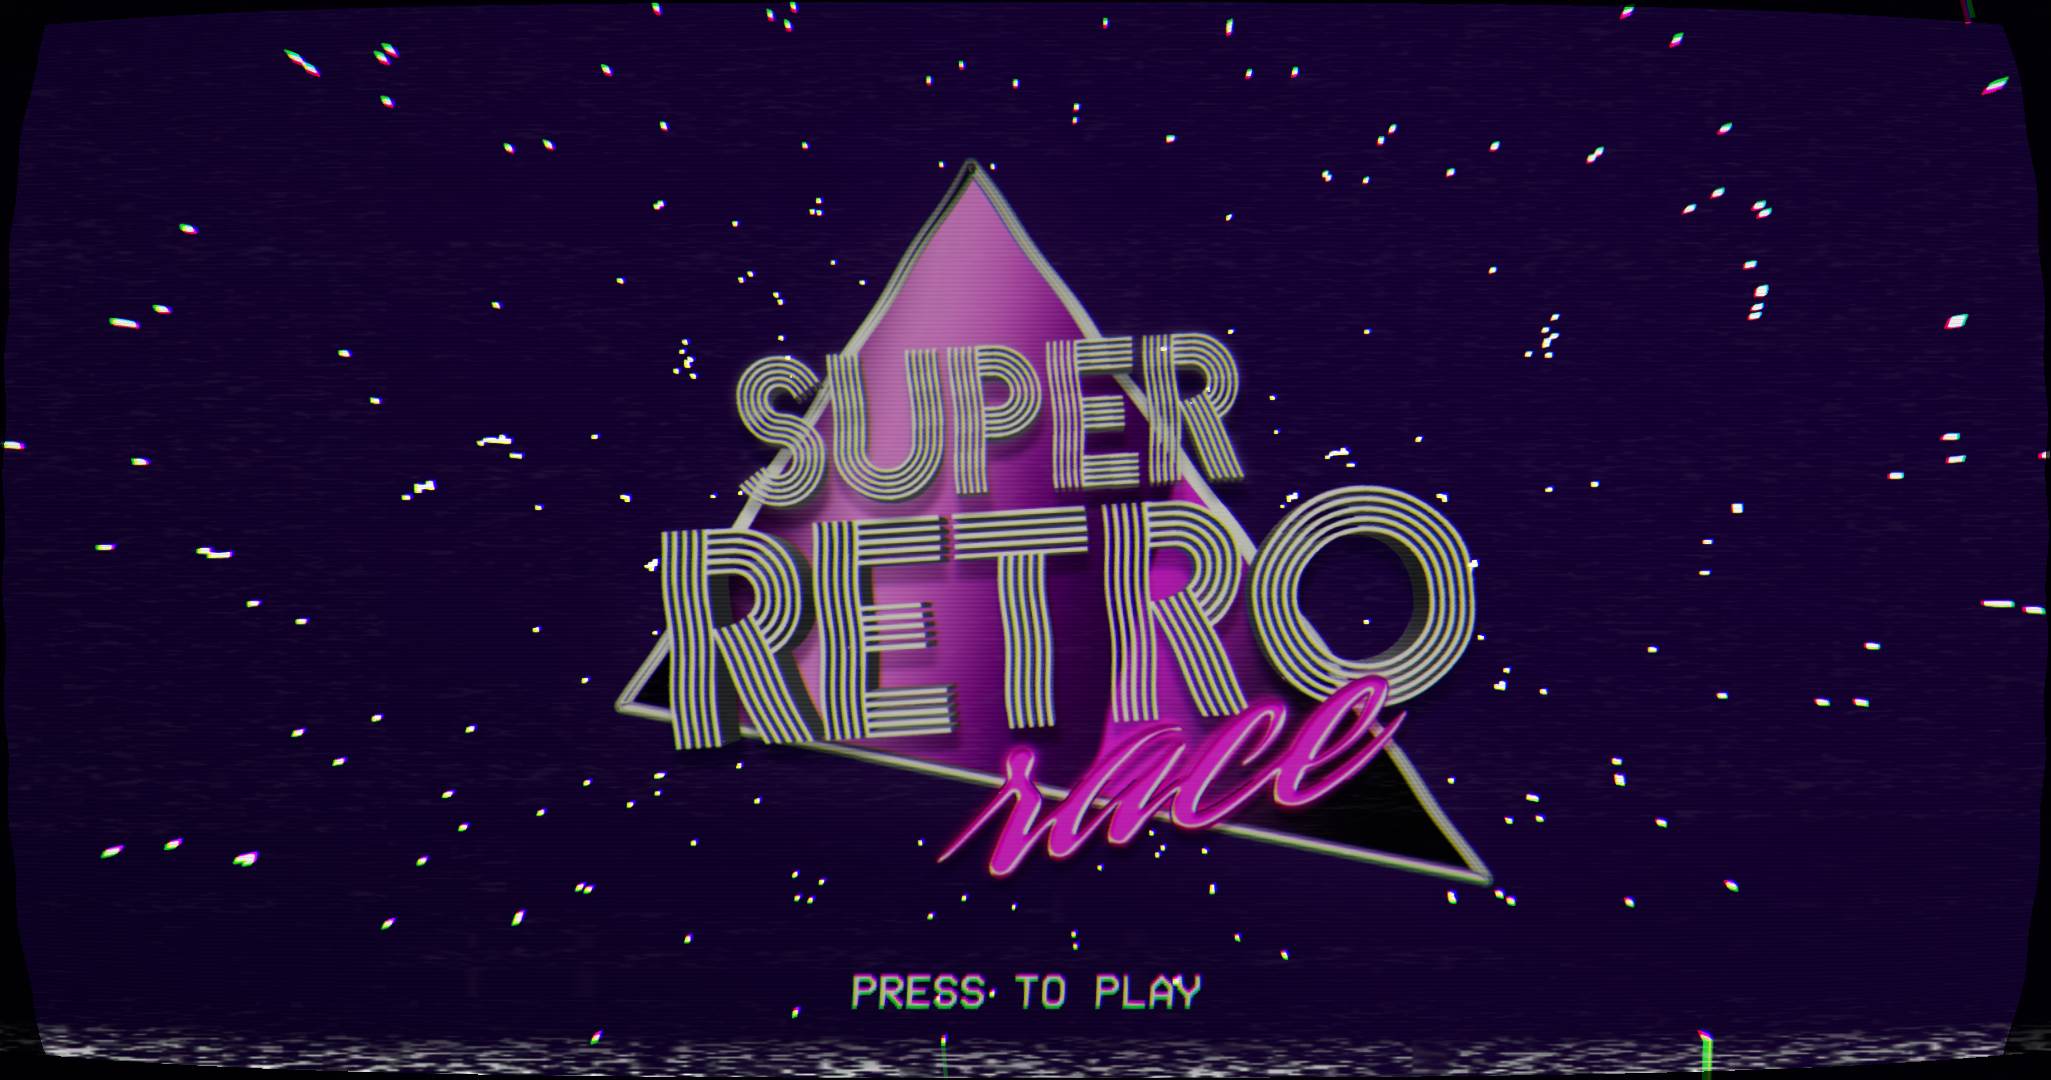 Super Retro Race